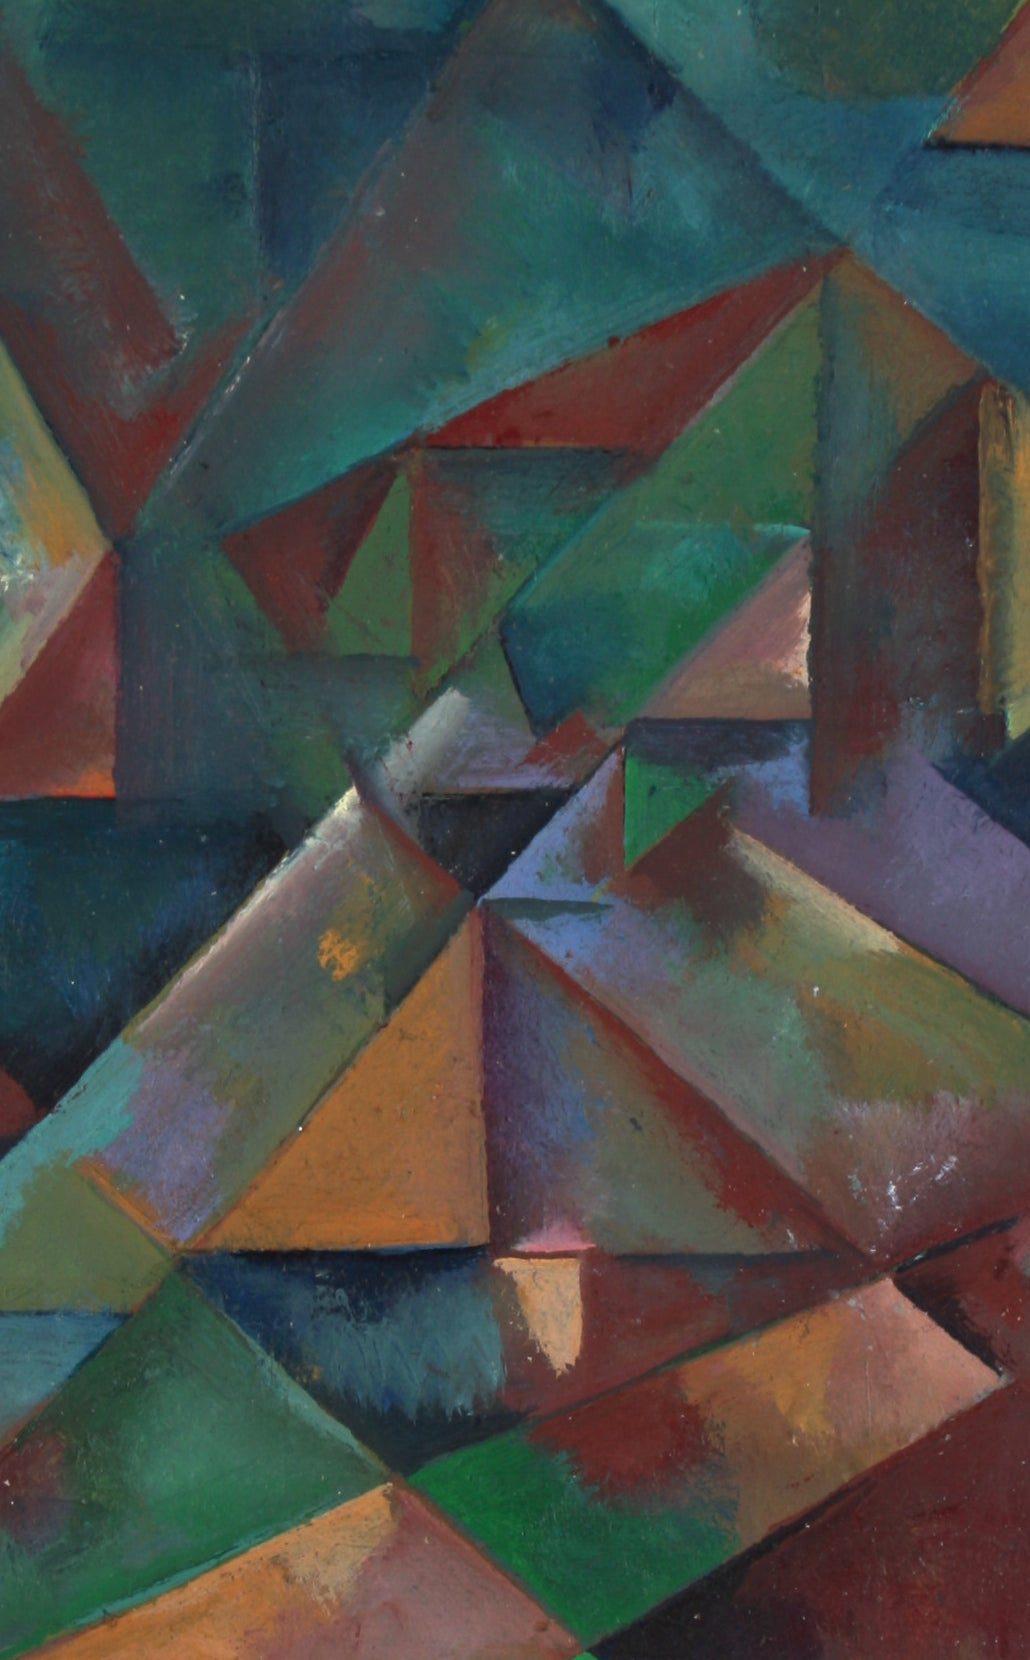 Desaturated Triangular Grid Late 20th Century Oil on Paper